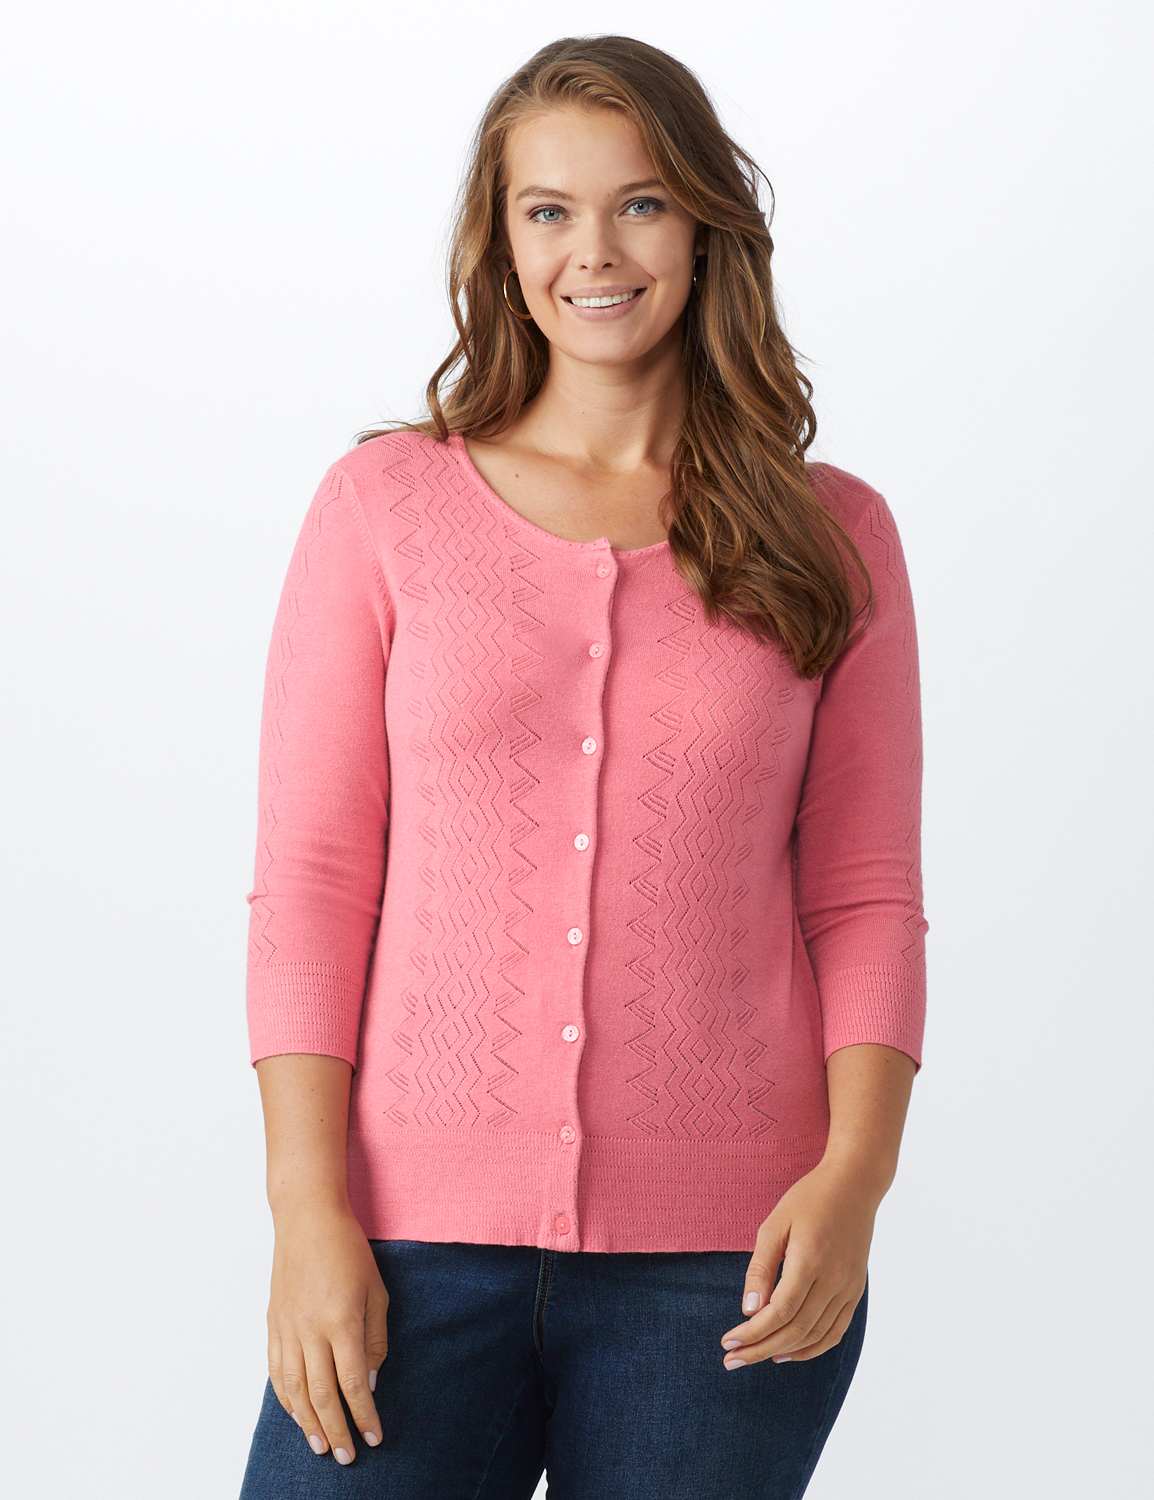 Roz & Ali Pointelle Button-Up Cardigan - Plus - Pink - Front